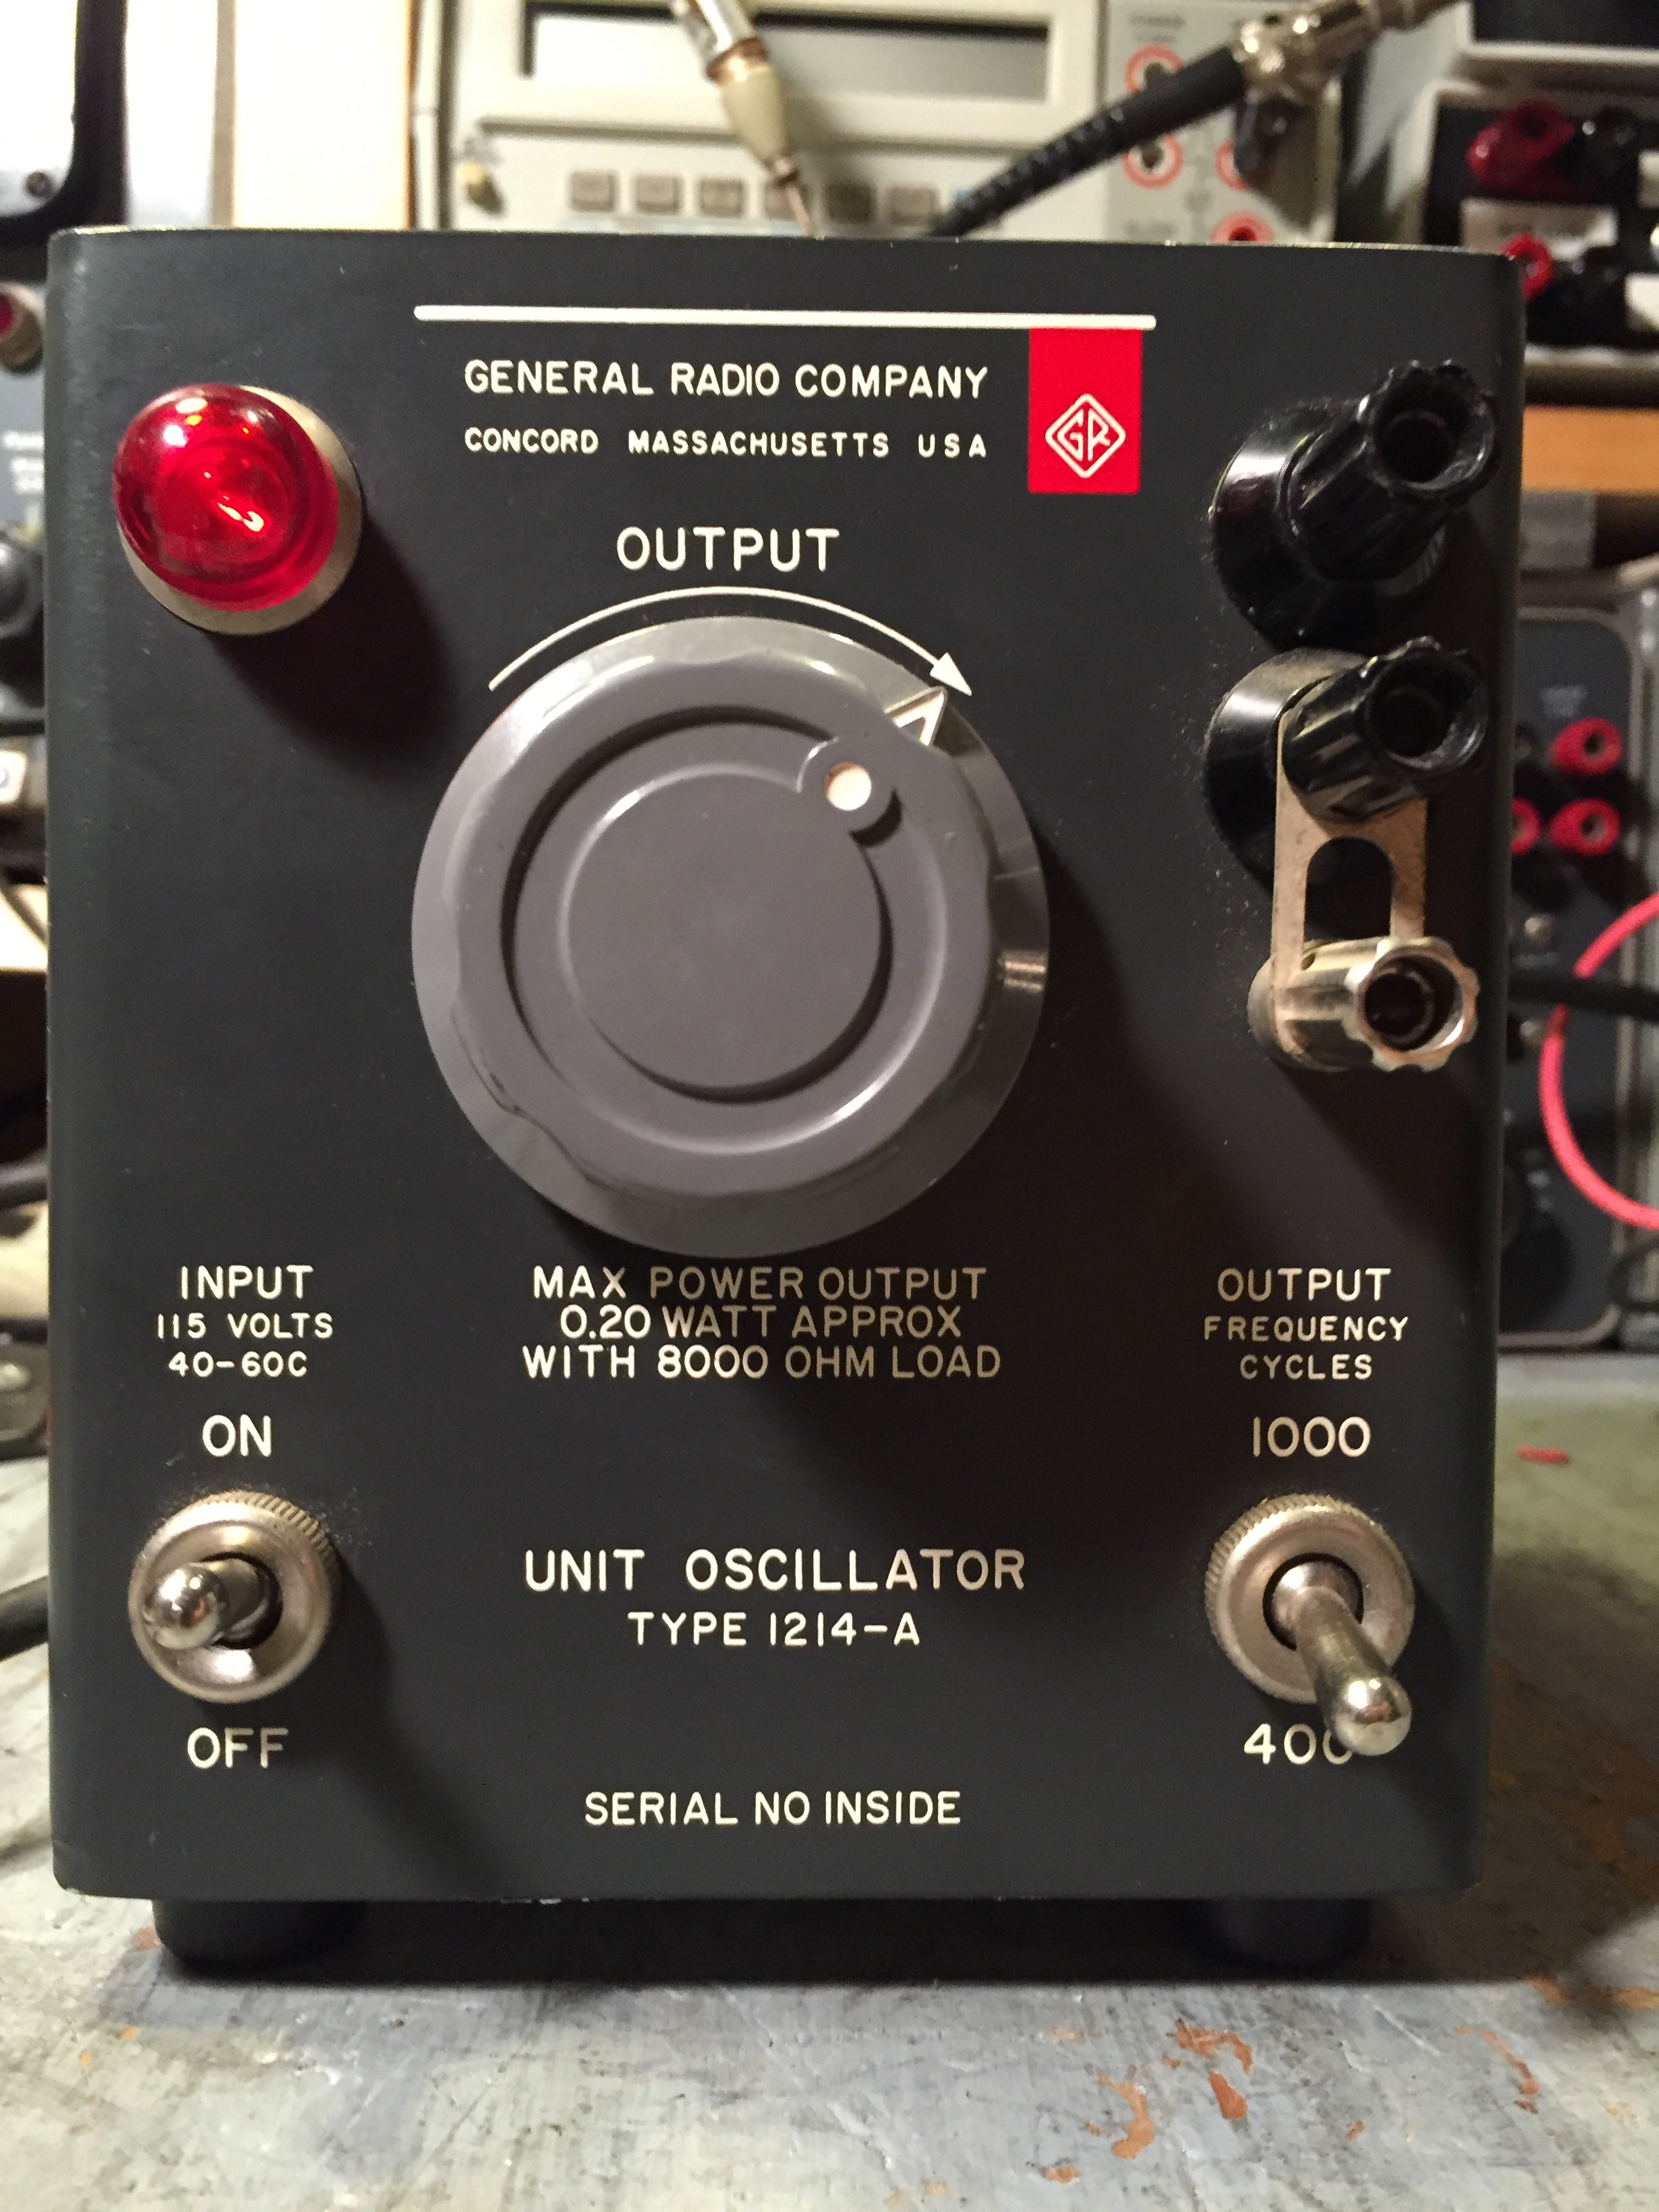 Antique Radio Forums View Topic General 1214 A Unit Audio Oscillators The Oscillator Is Fixed Tuned But Can Be Switched Between 400 Hz And 1000